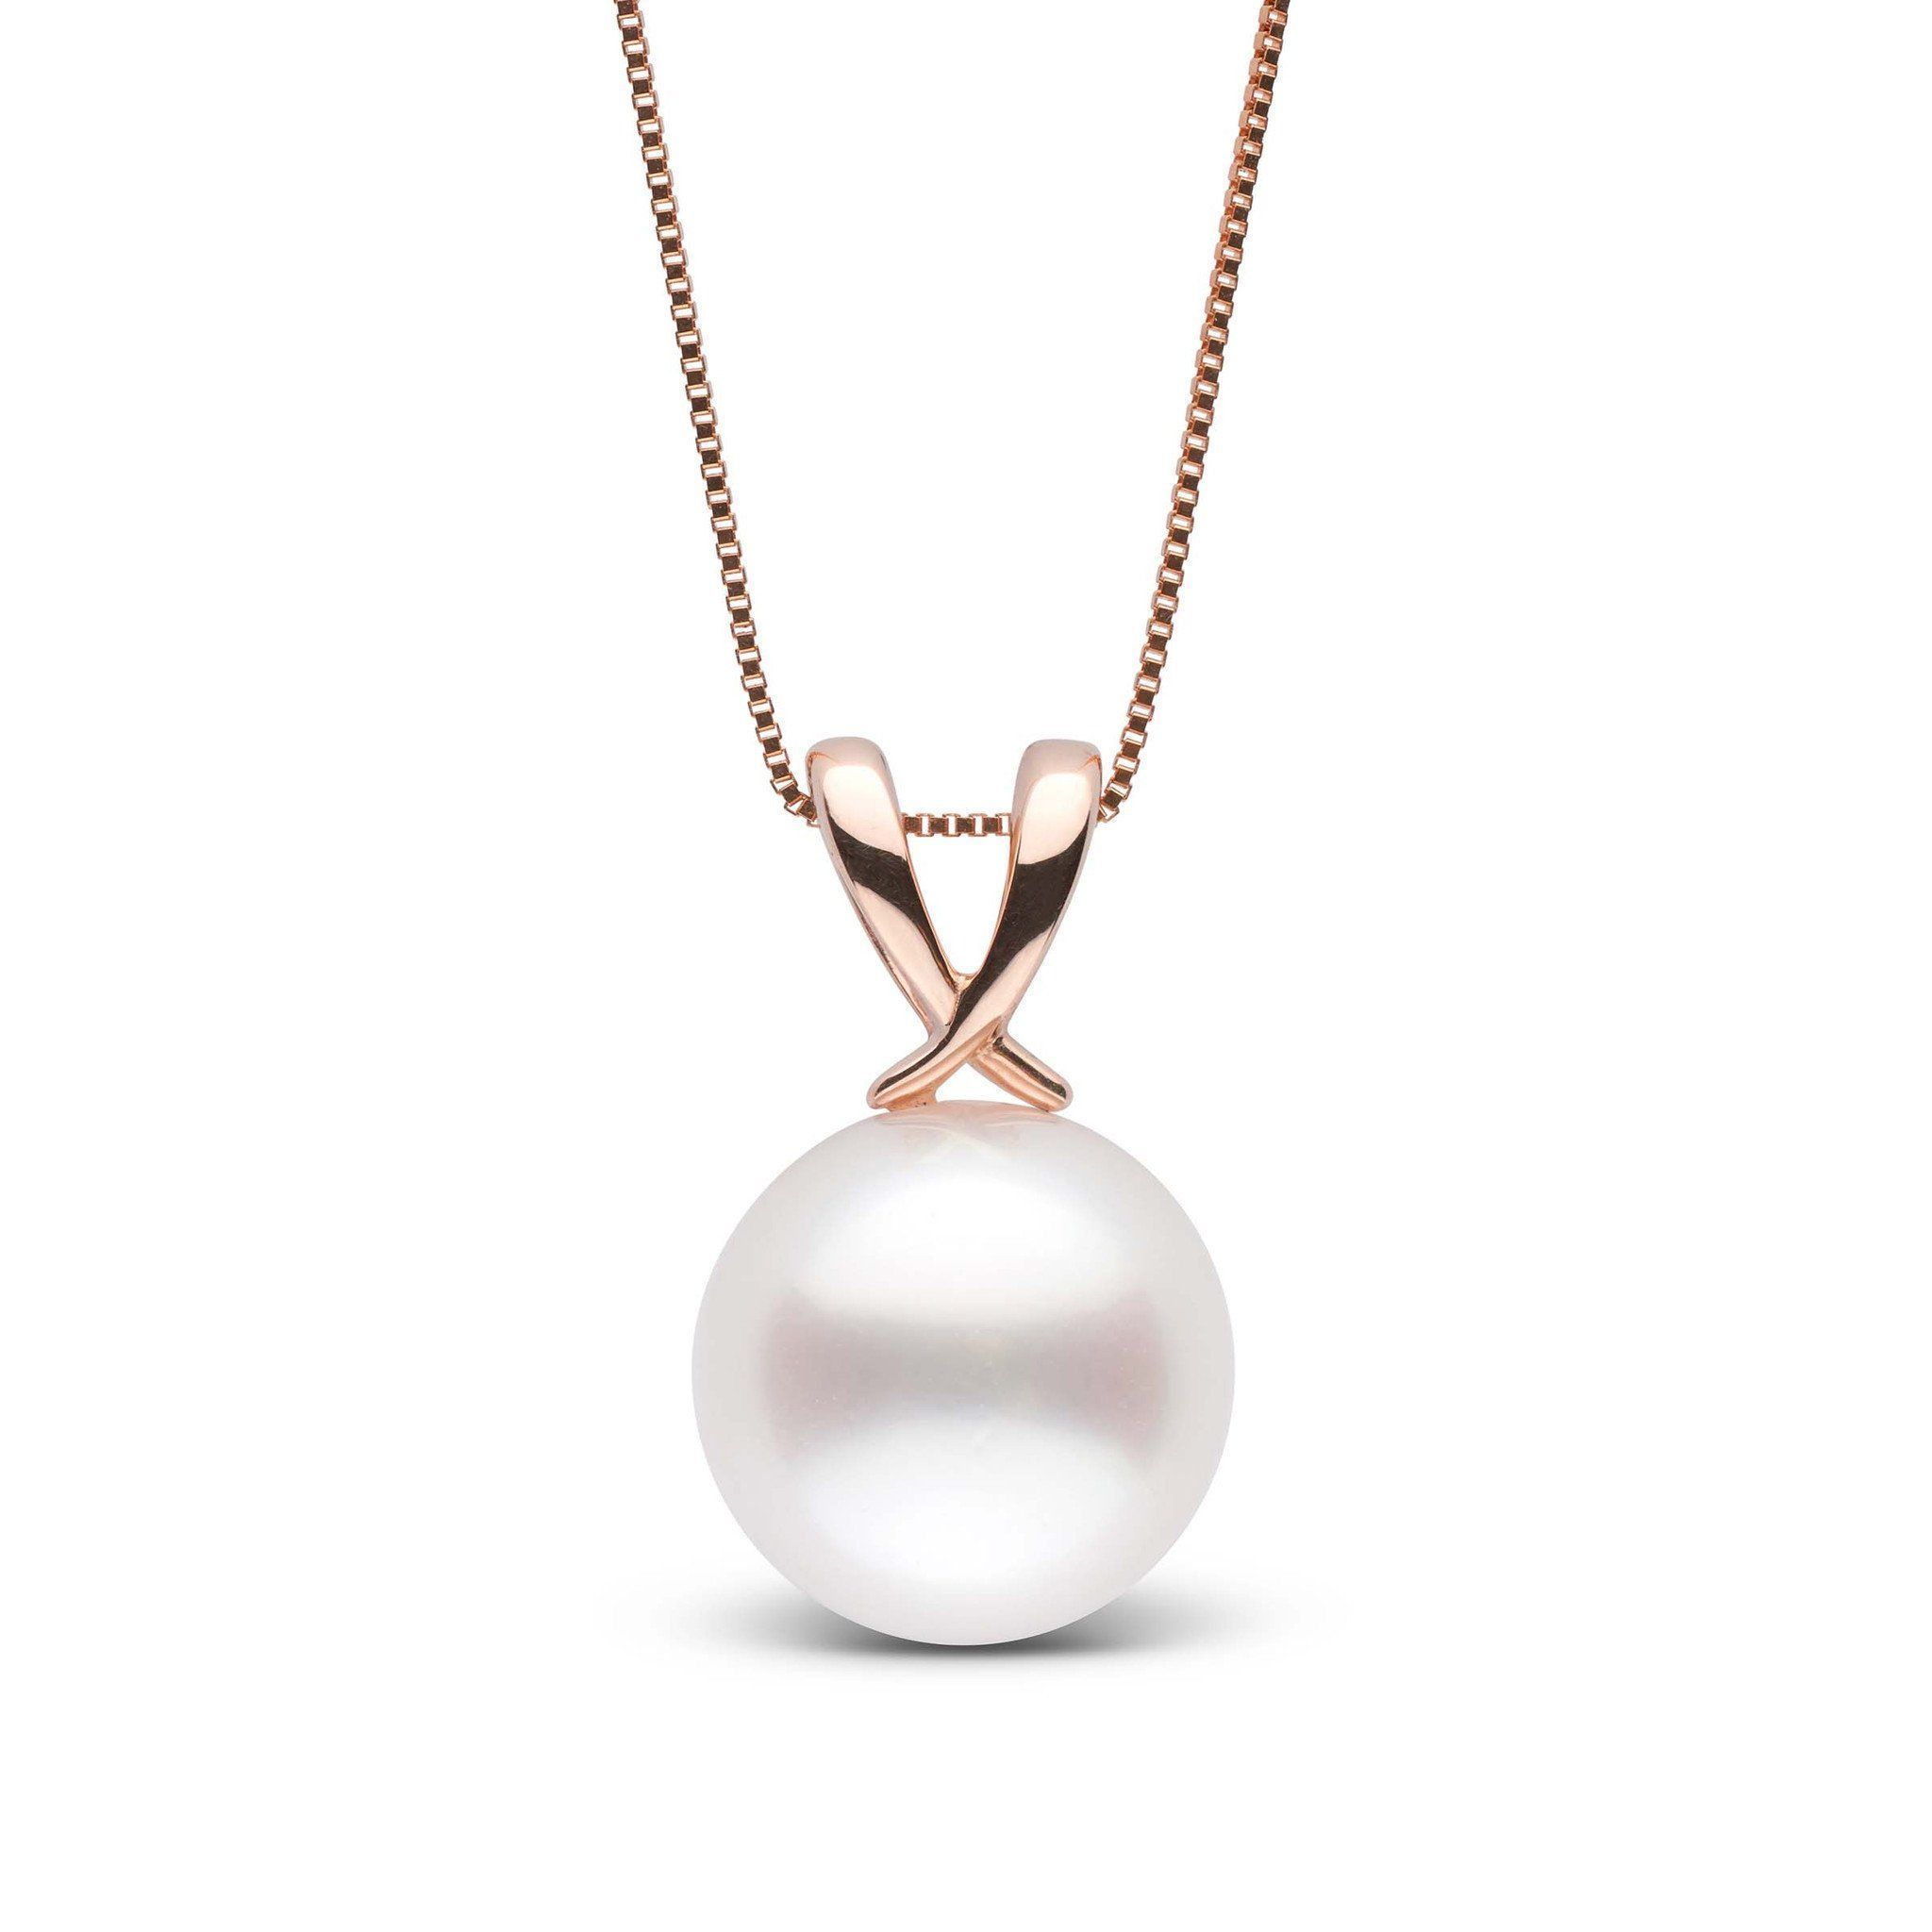 Ribbon Collection 11.0-12.0 mm White South Sea Pearl Pendant